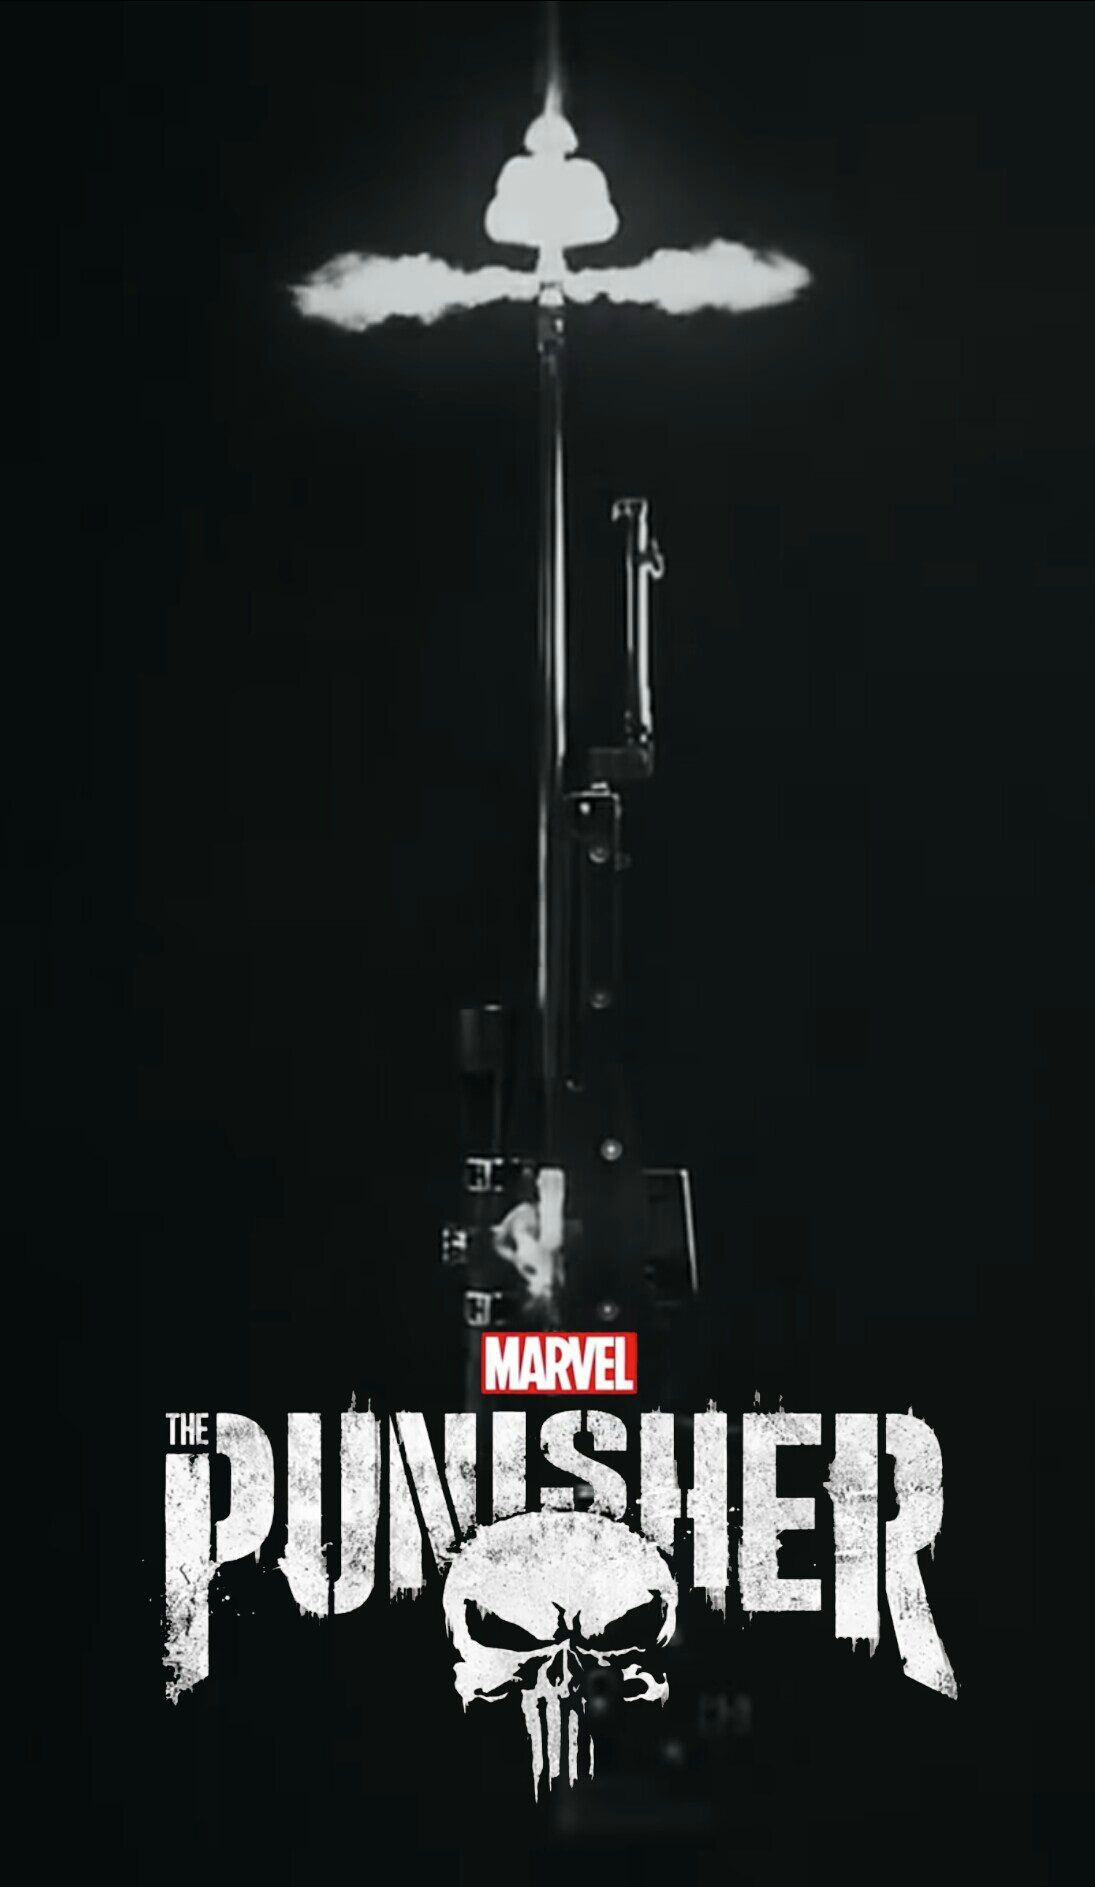 I made this The Punisher mobile wallpaper. Sorry for